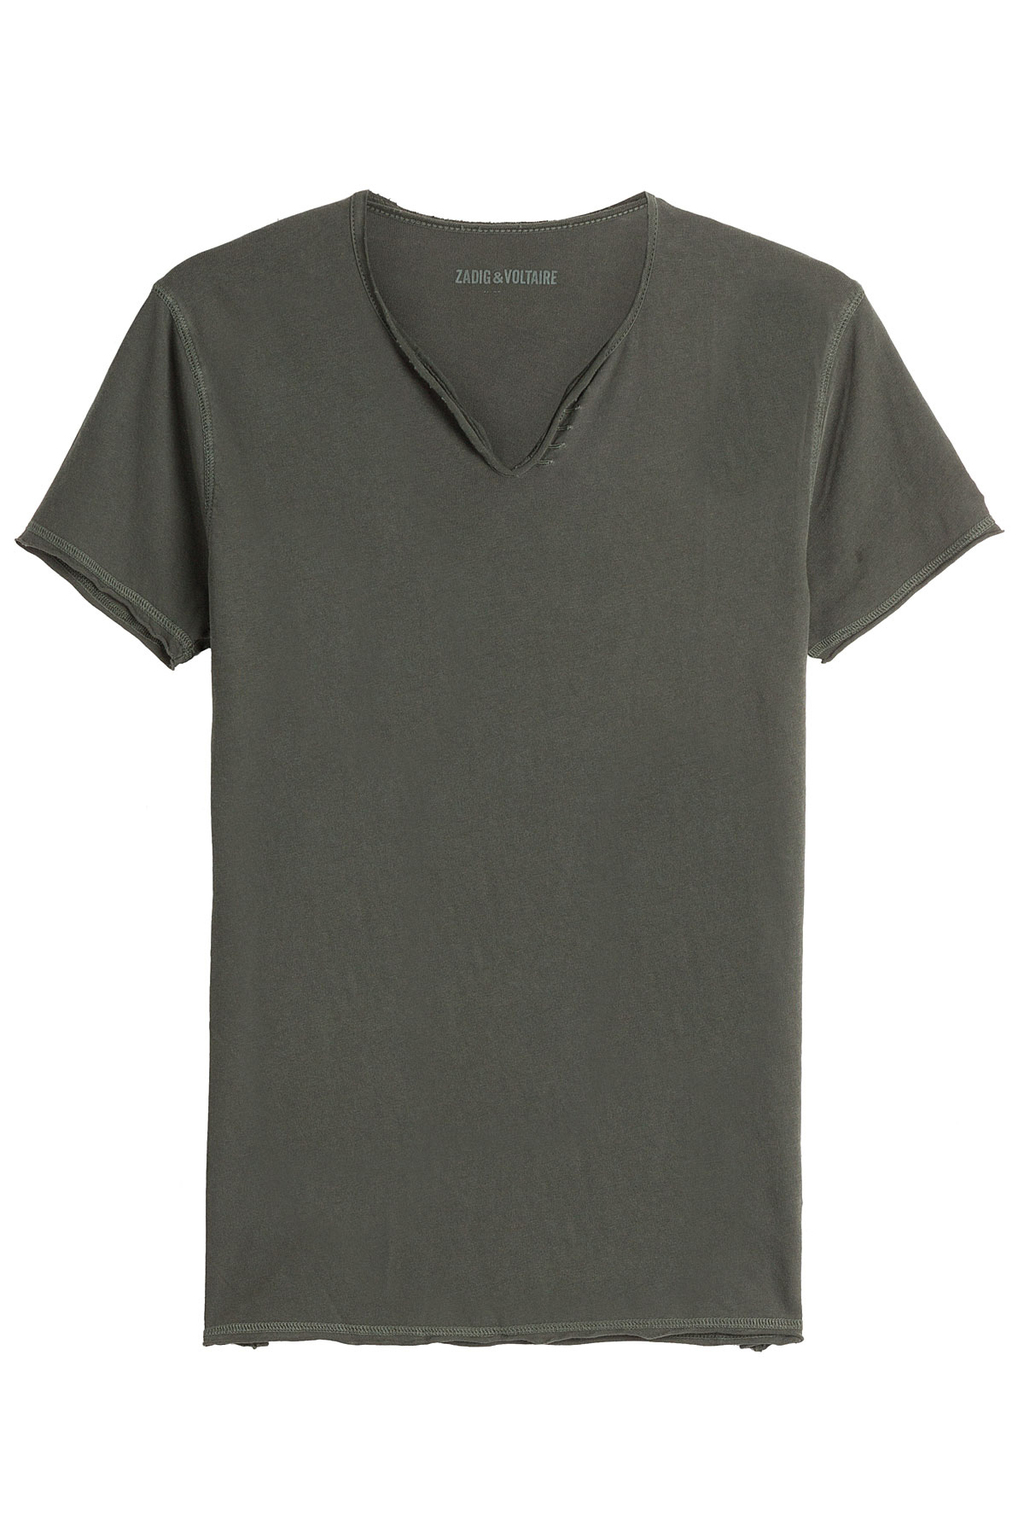 Monas Mc Overdyed Cotton T Shirt - neckline: v-neck; pattern: plain; style: t-shirt; predominant colour: dark green; occasions: casual; length: standard; fibres: cotton - 100%; fit: body skimming; sleeve length: short sleeve; sleeve style: standard; texture group: jersey - clingy; pattern type: fabric; season: a/w 2016; wardrobe: highlight